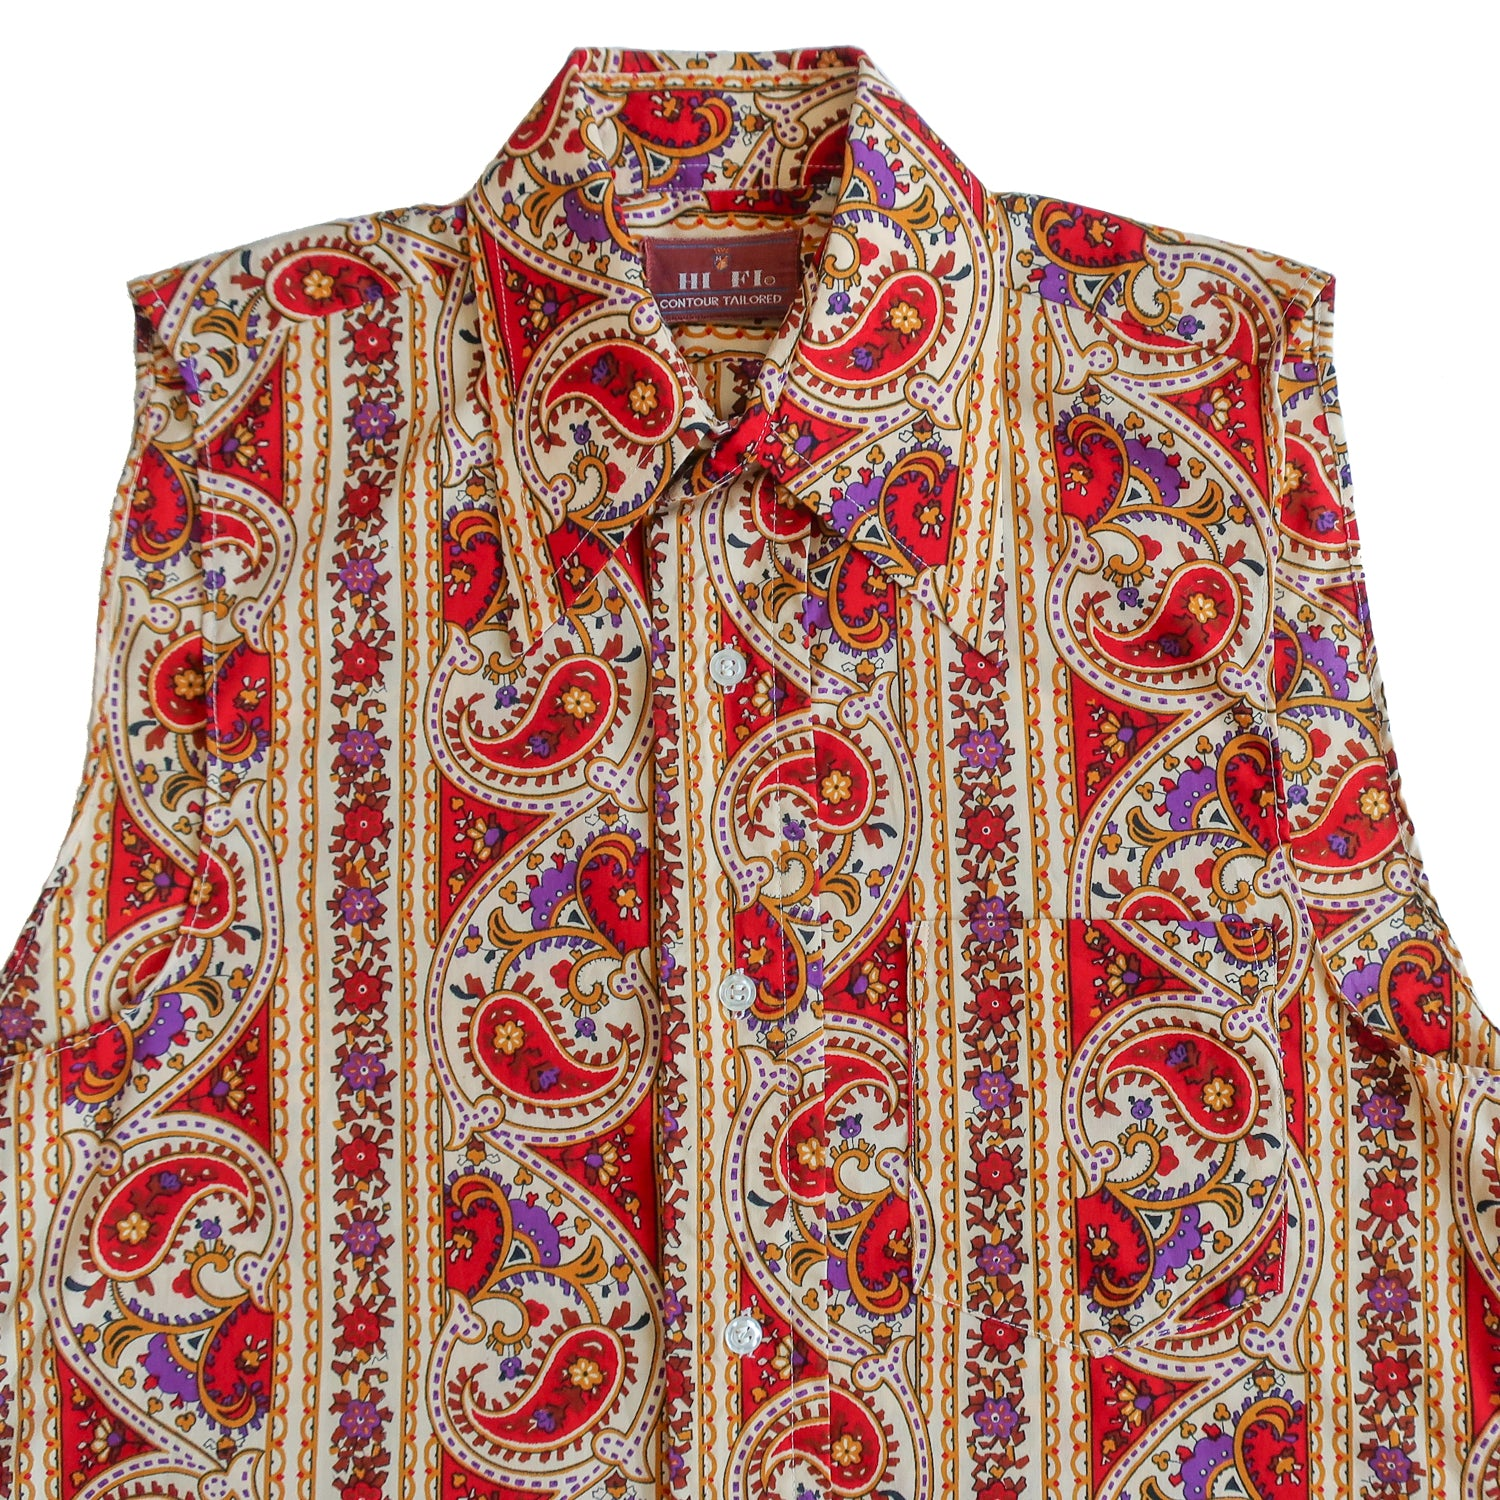 Second Room Vintage Clothing. Vintage 70s red, yellow and purple paisley print sleeveless button up shirt. This blouse has one breast pocket, and an exaggerated pointed collar, which has a stiffener inside, so it always looks sharp. Free Shipping on all orders within North America.